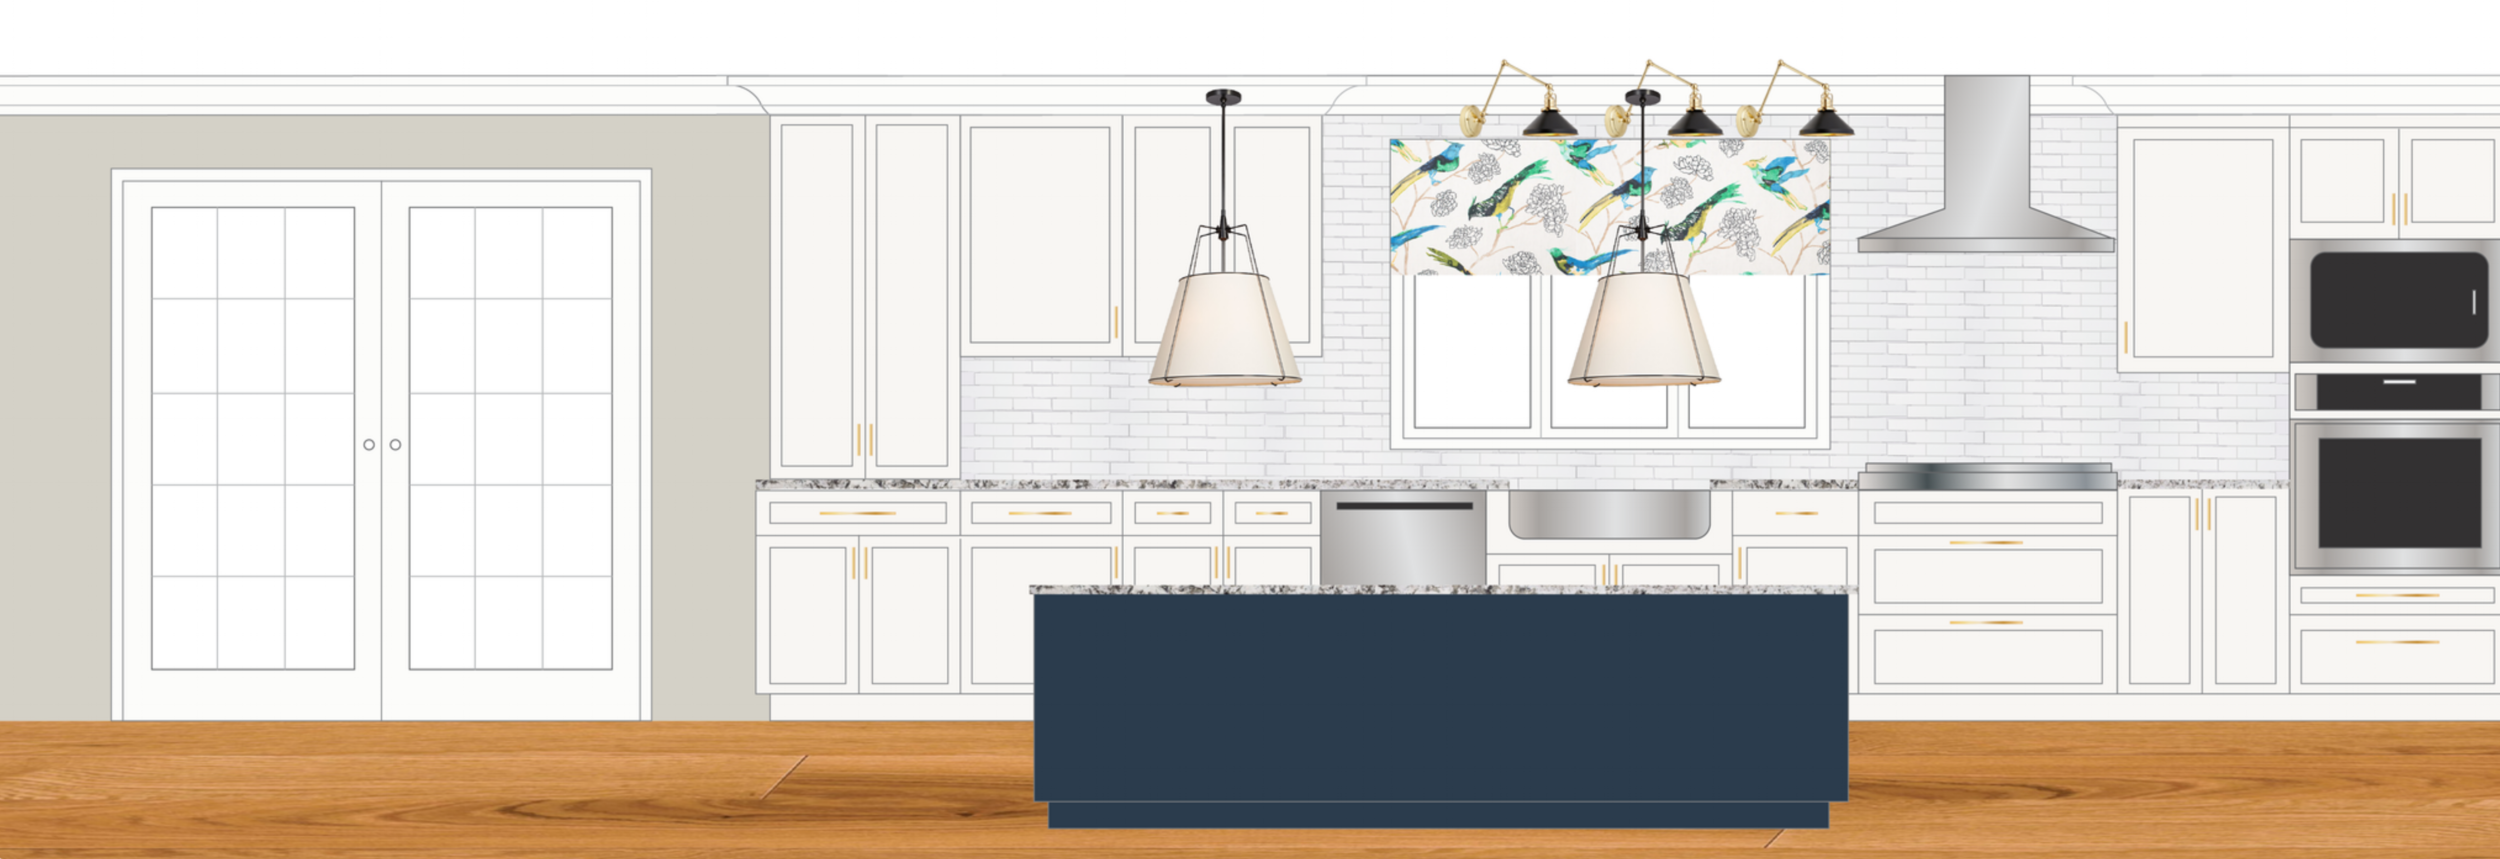 The mock-up rendering for the clients' dream kitchen in their '80s farmhouse remodel. The 11-foot navy island will be perfect for the busy family of four!